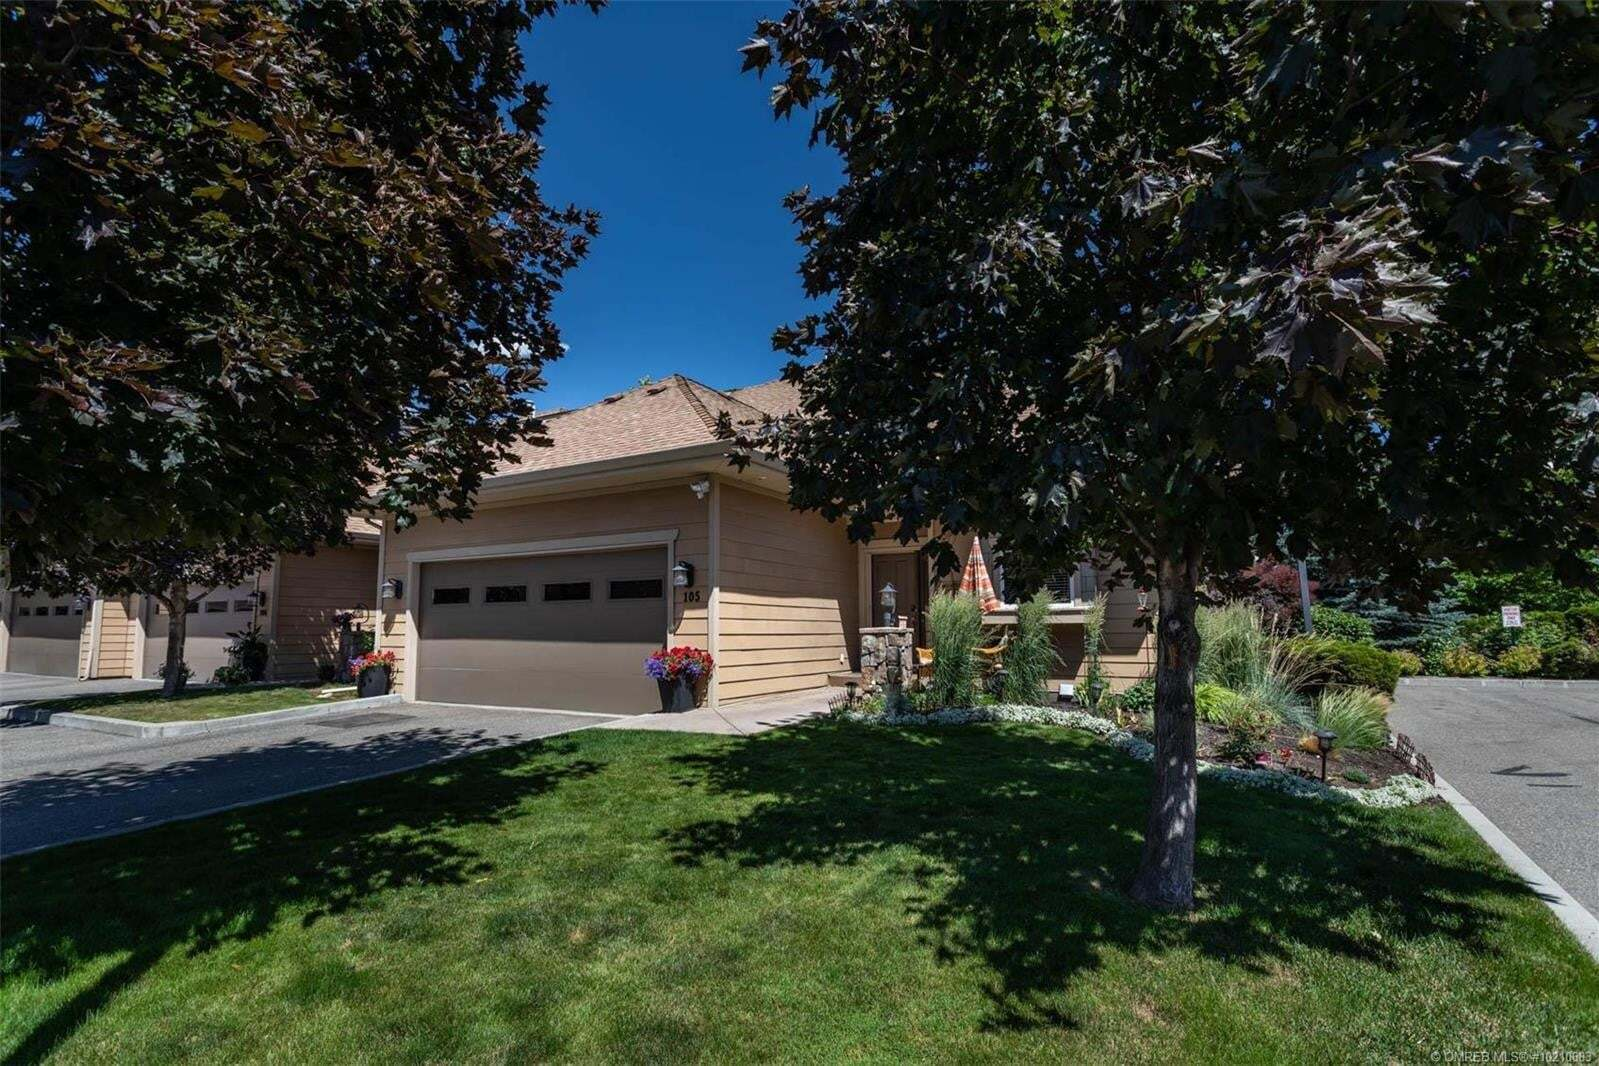 Townhouse for sale at 690 Lequime Rd Kelowna British Columbia - MLS: 10210683